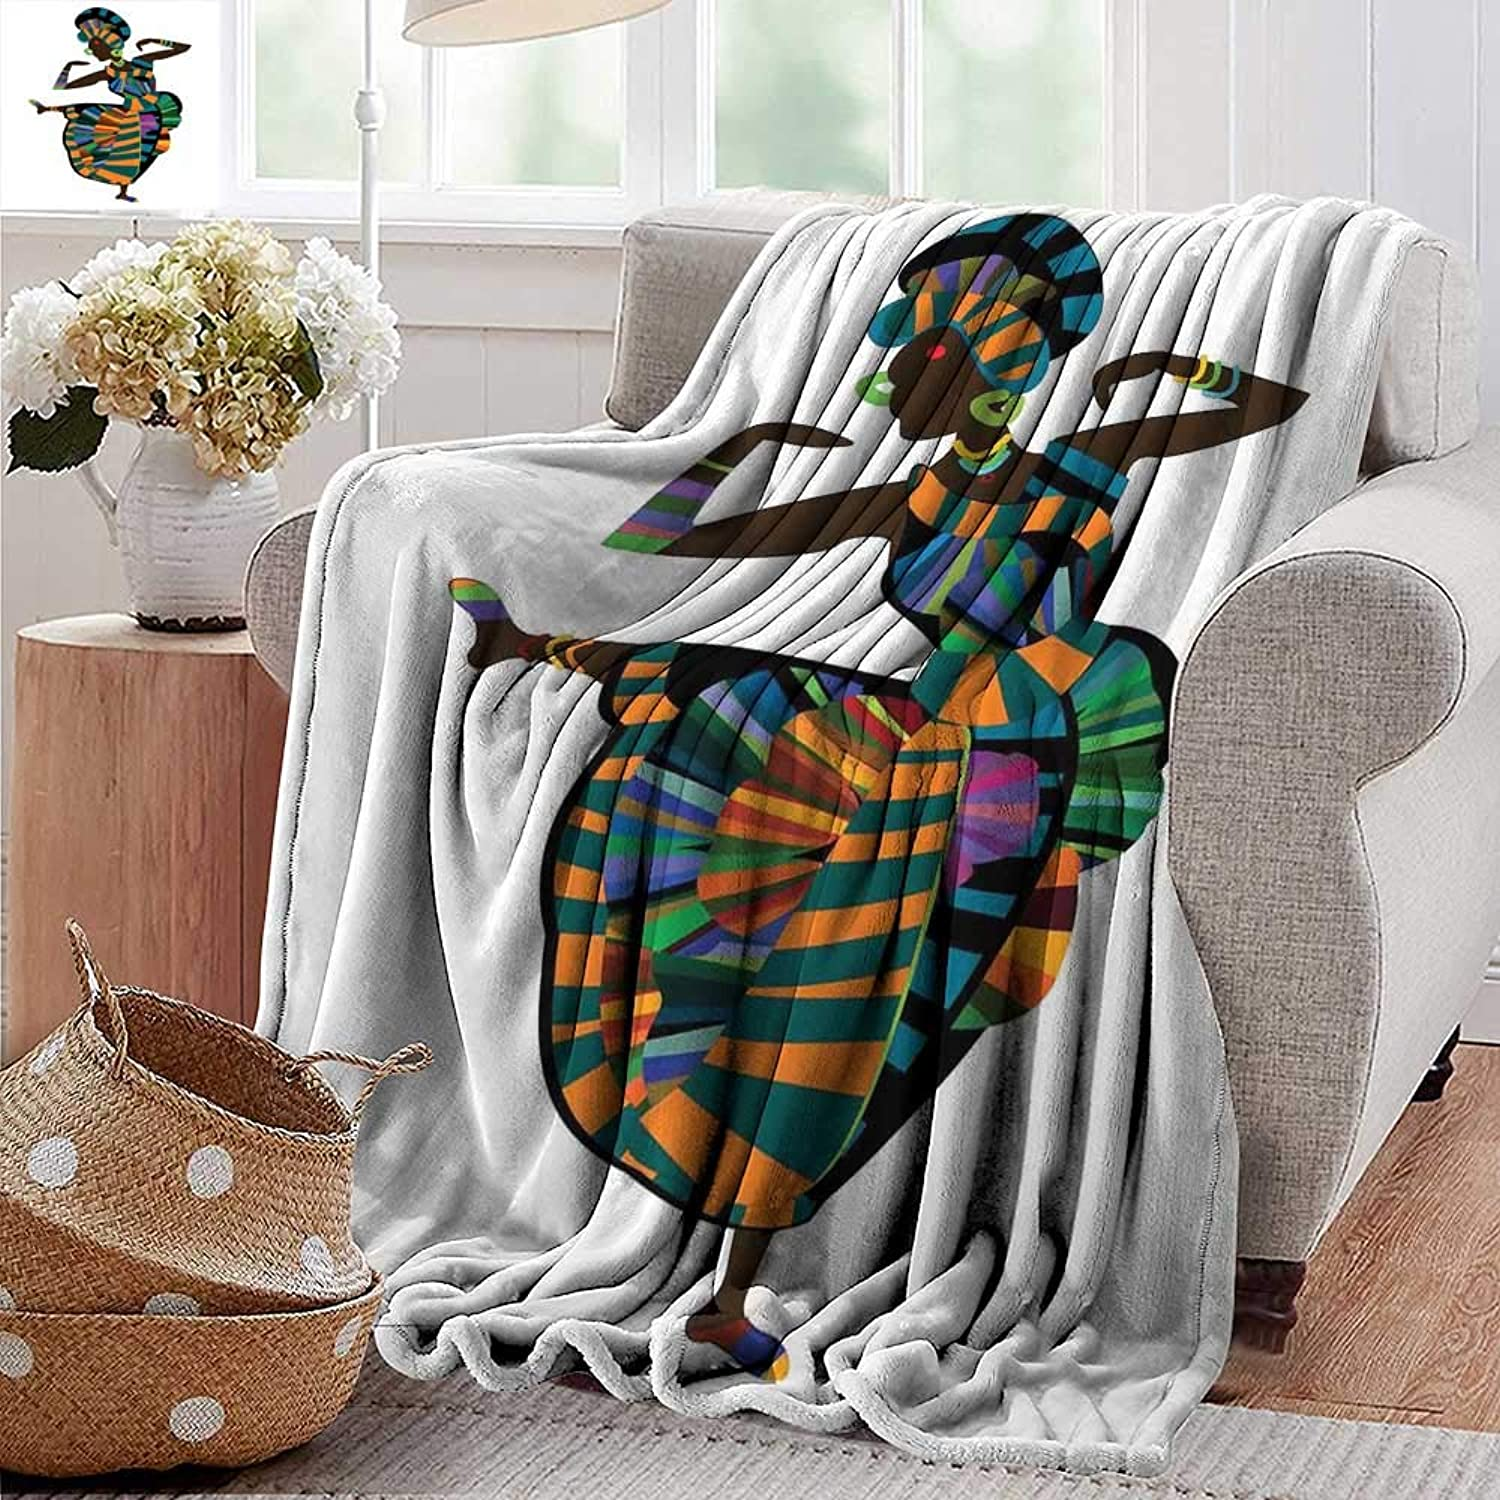 PearlRolan Beach Blanket,African Woman,Black Girl in a Traditional Dress Performing an Ethnic Dance Native Zulu,Multicolor,300GSM, Super Soft and Warm, Durable 50 x60